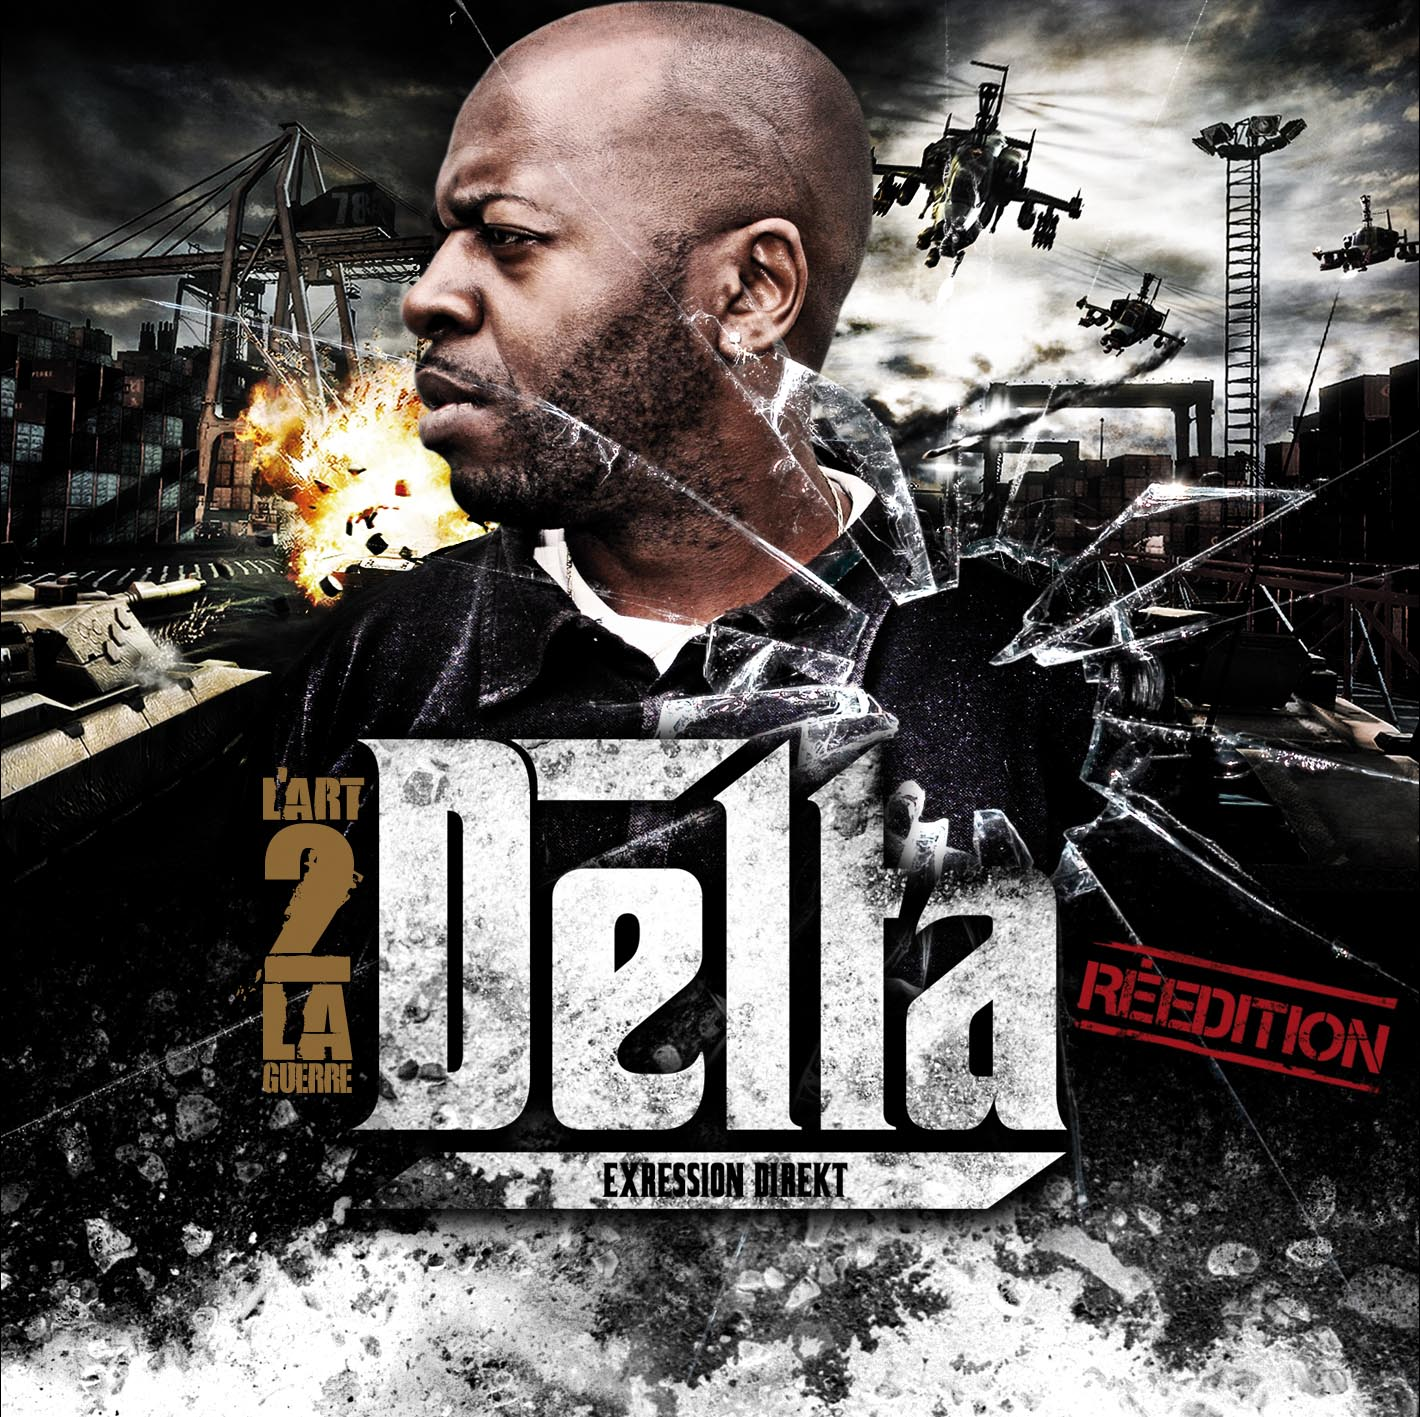 Delta - L ART DE LA RUE REEDITION